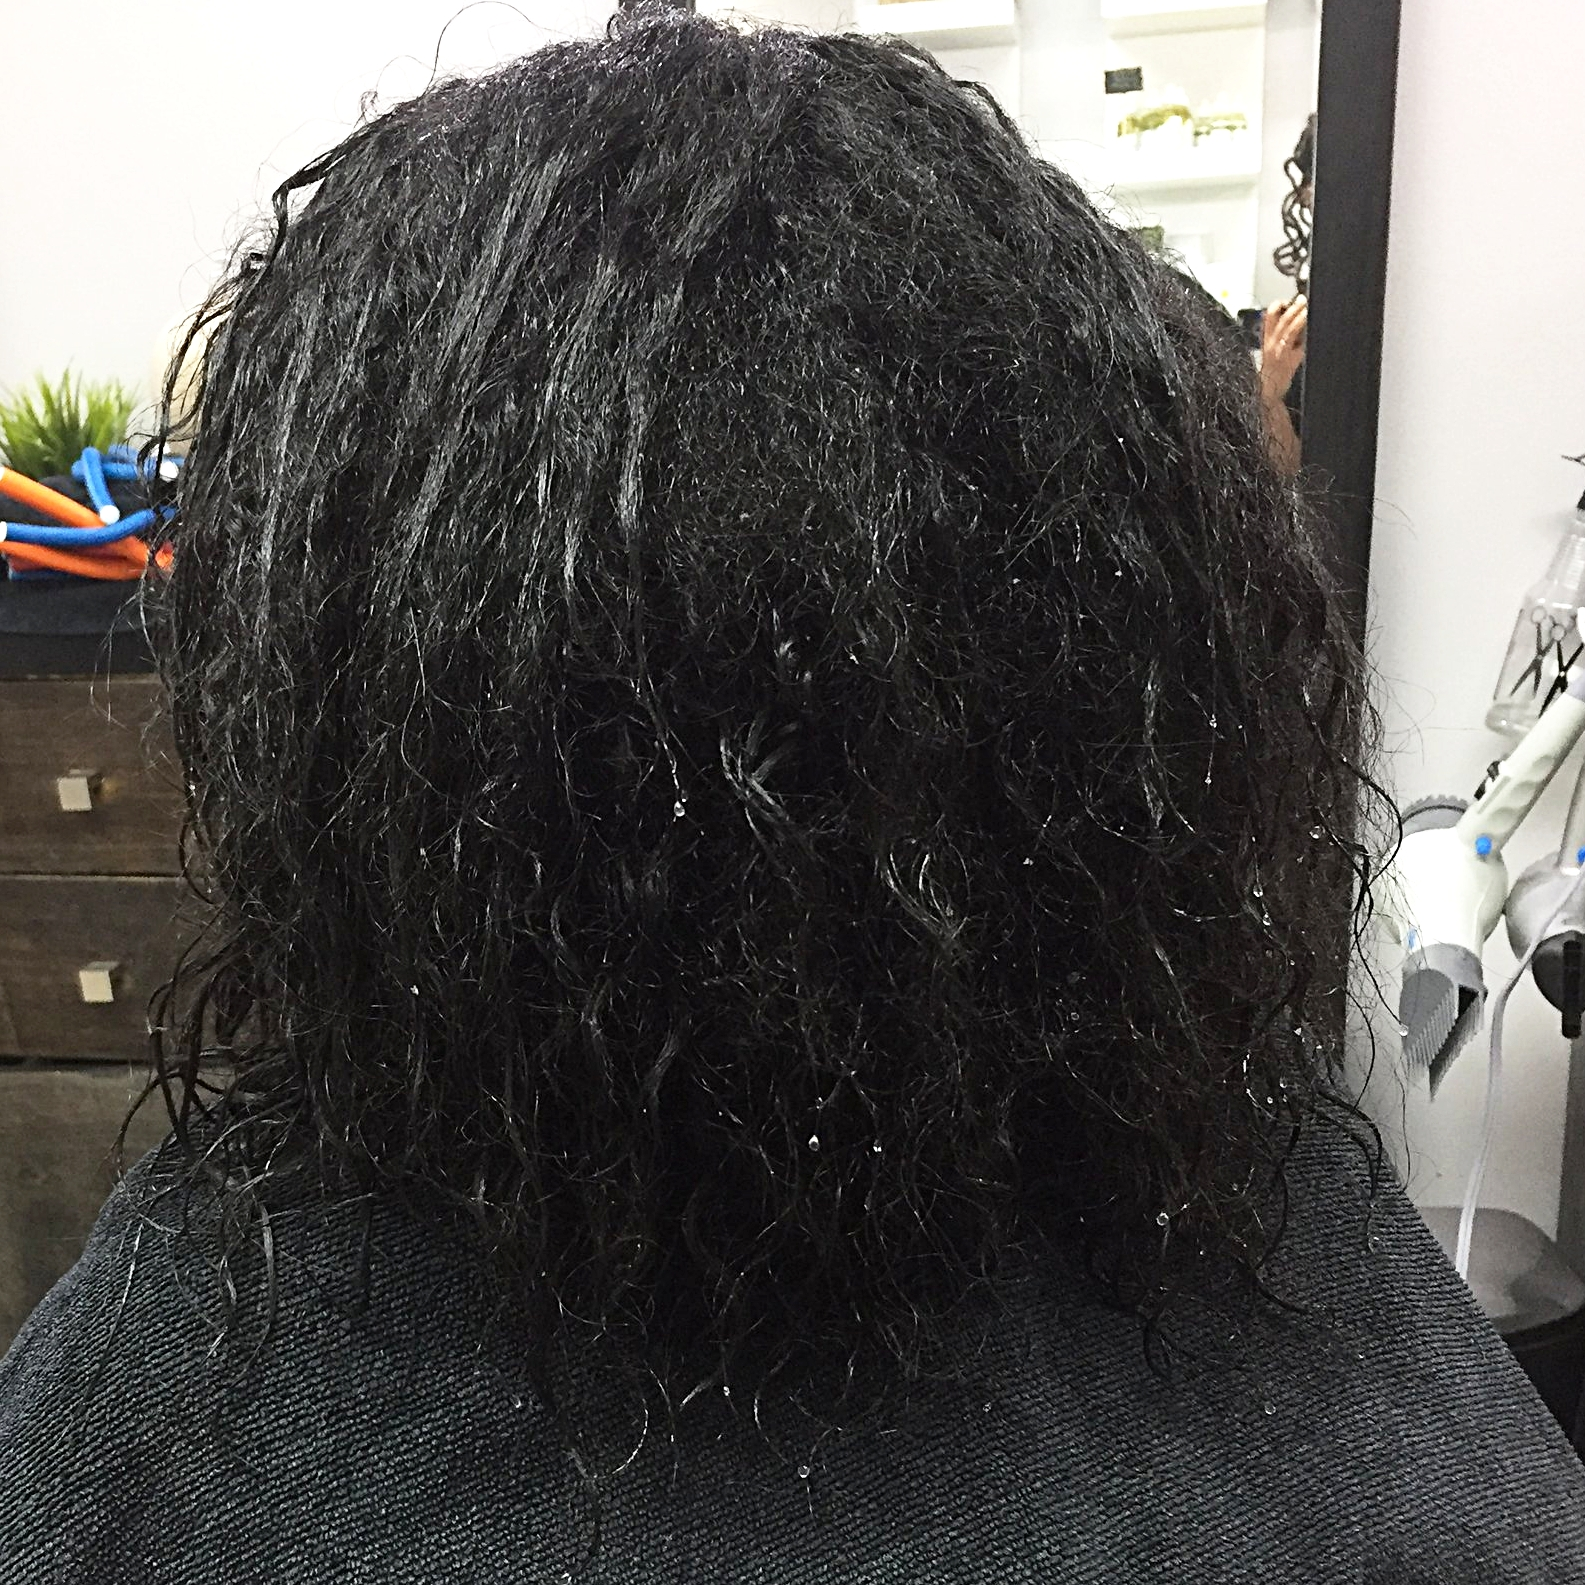 Relaxed to #naturalhair — WEENA JEROME